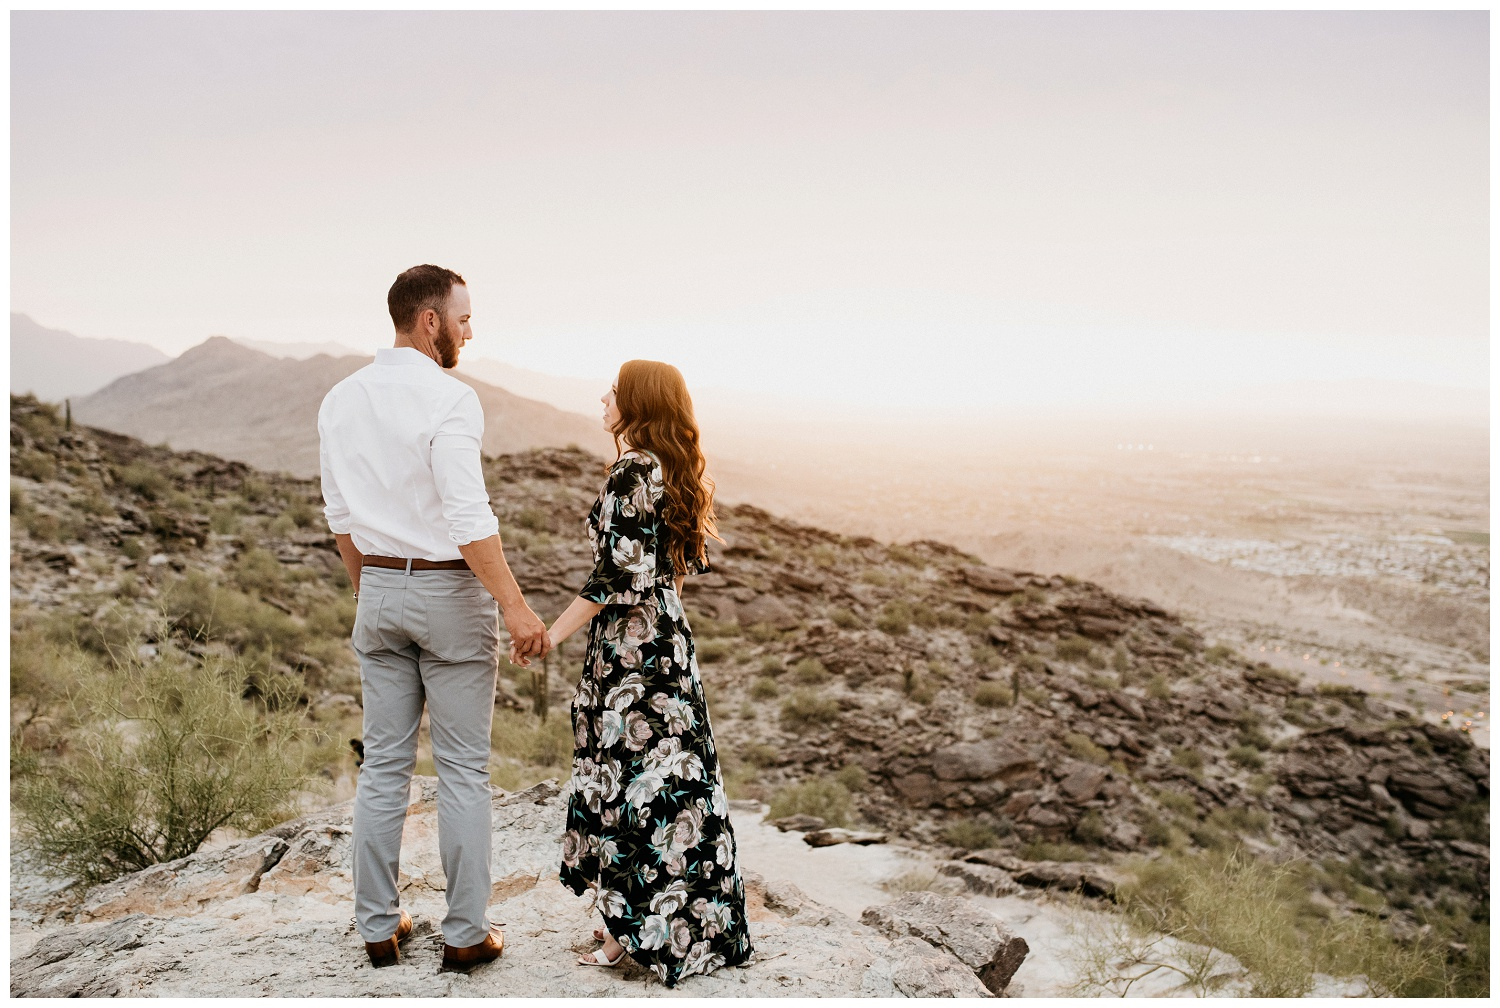 South Mountain Engagement Session Phoenix Wedding Photographer Ashtyn Nicole Photo 19